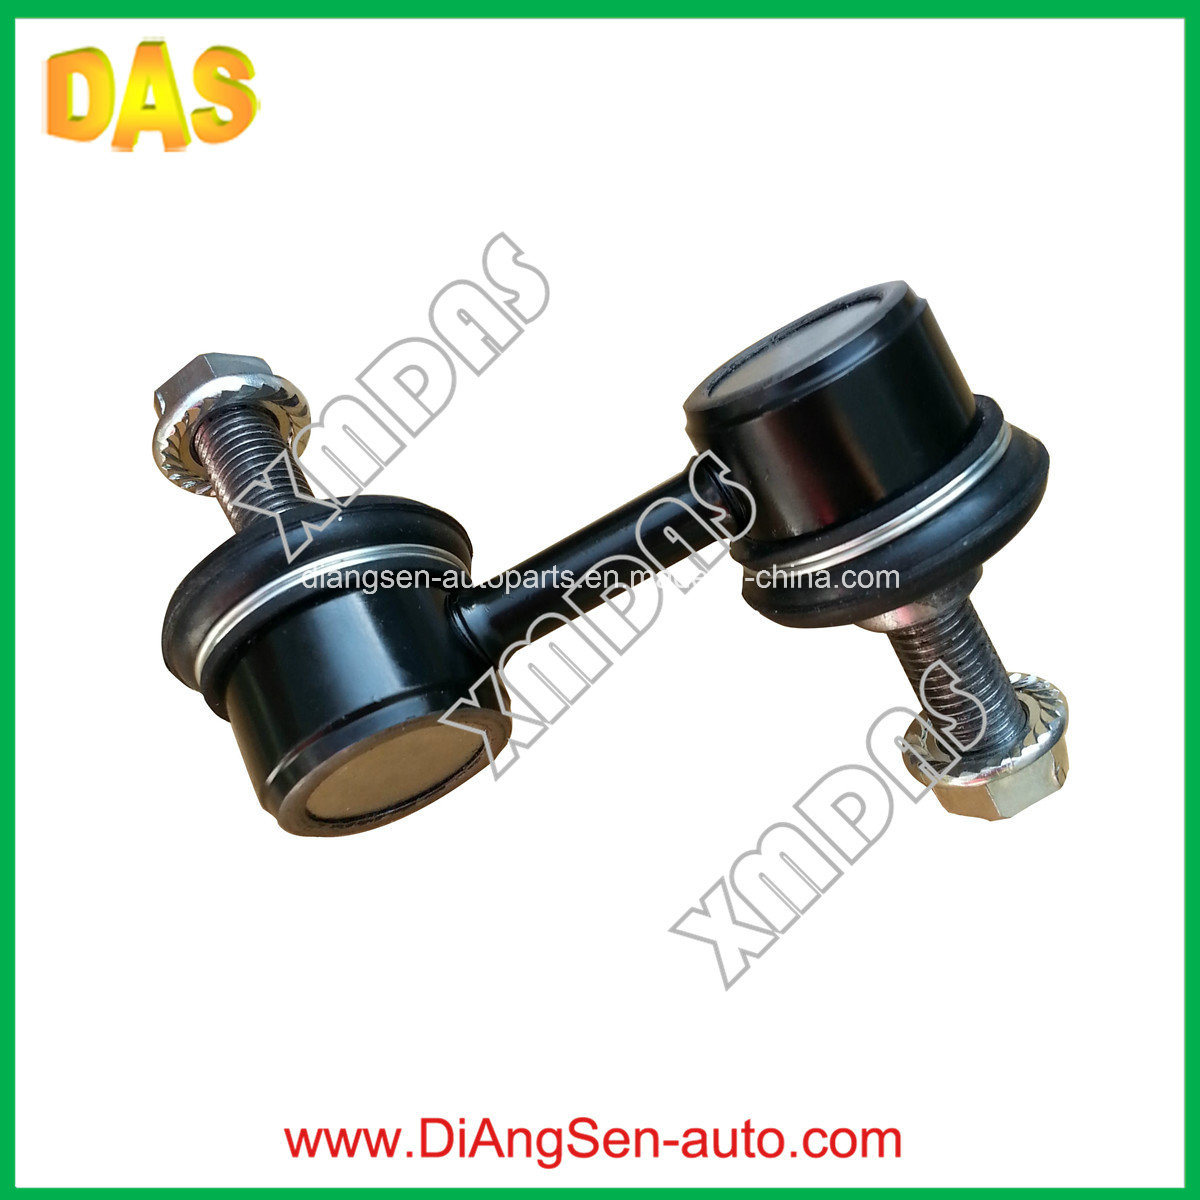 Suspension Parts Stabilizer Link for Honda (51320-S5A-003, 51321-S5A-003)